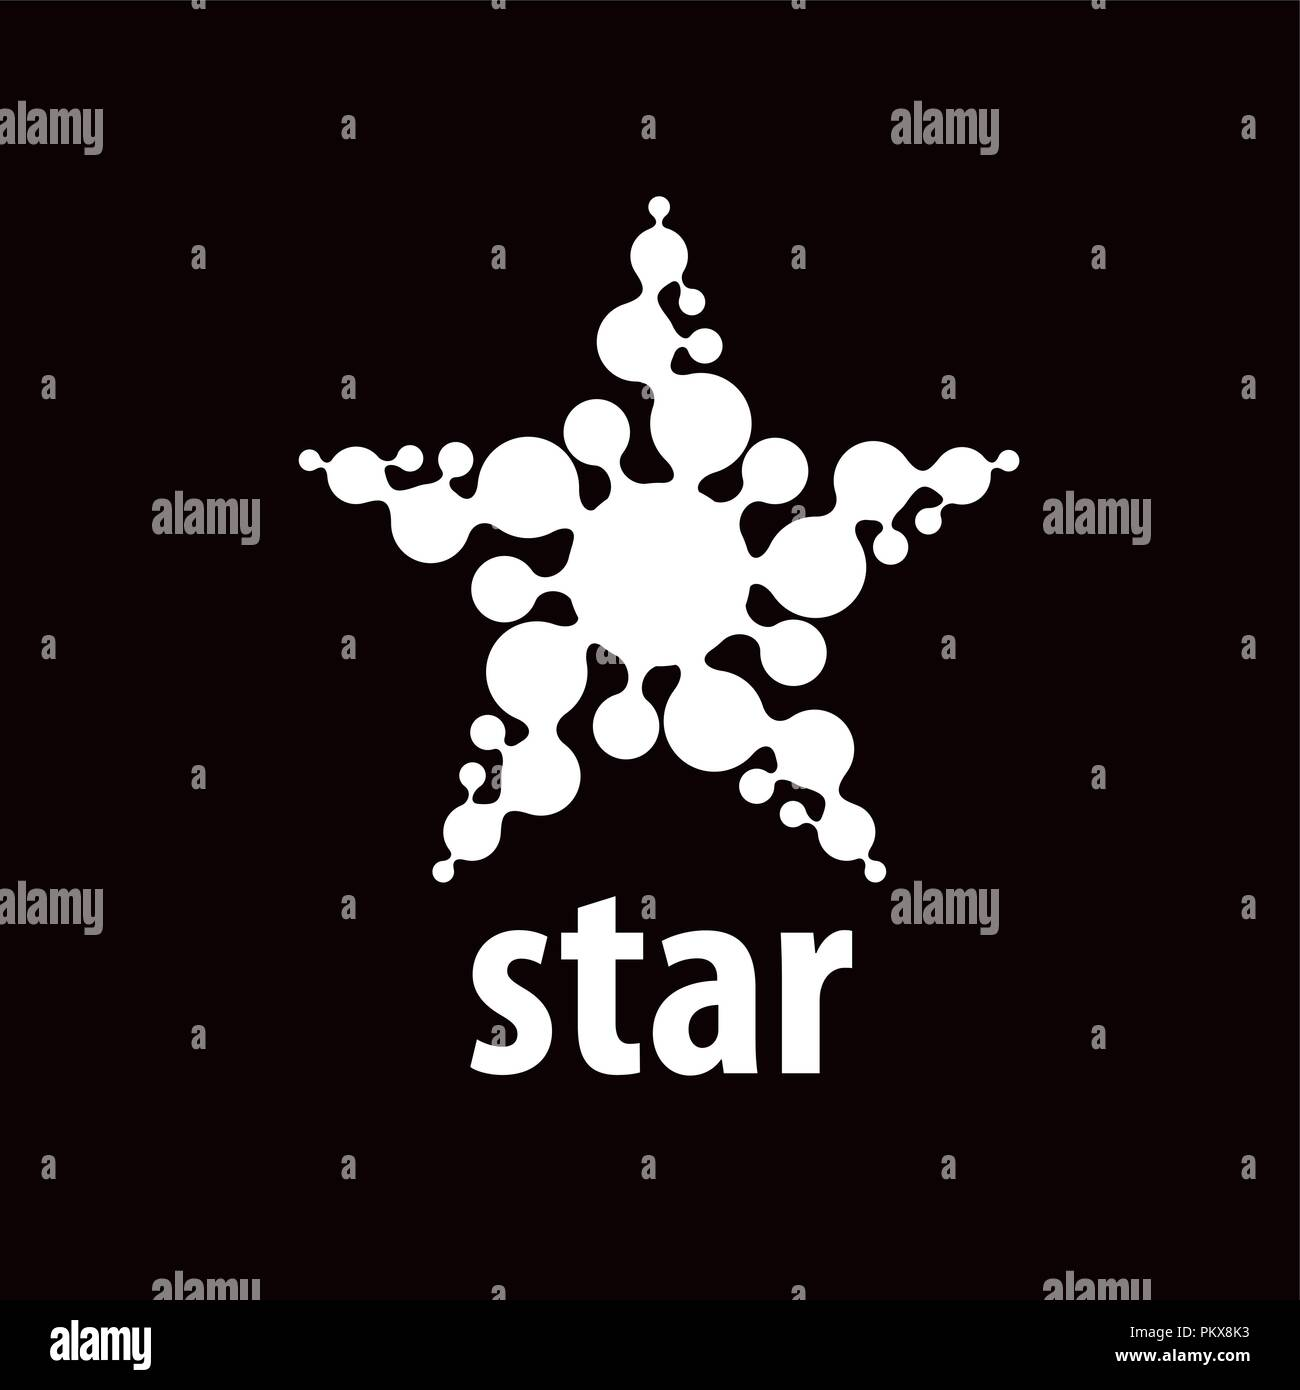 vector logo star - Stock Image